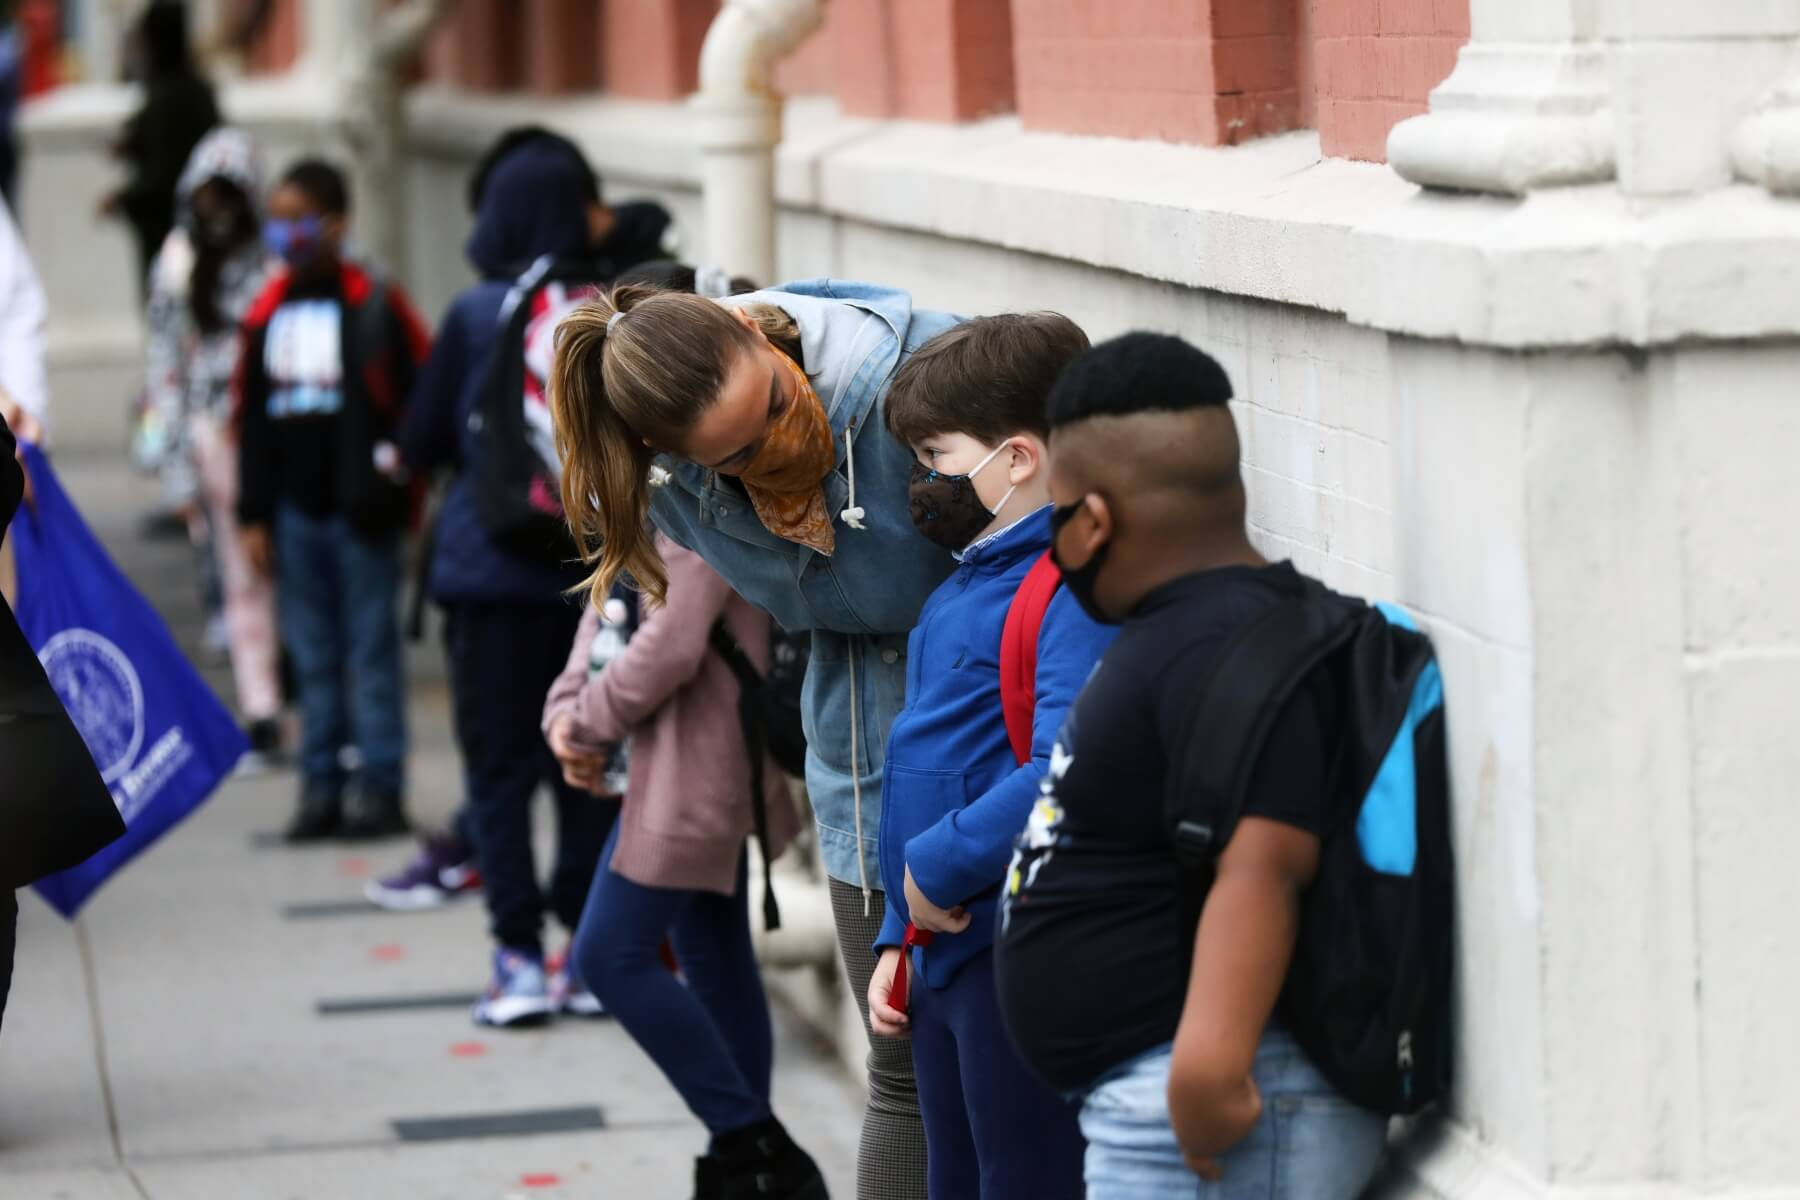 New York City to reopen primary schools despite virus surge